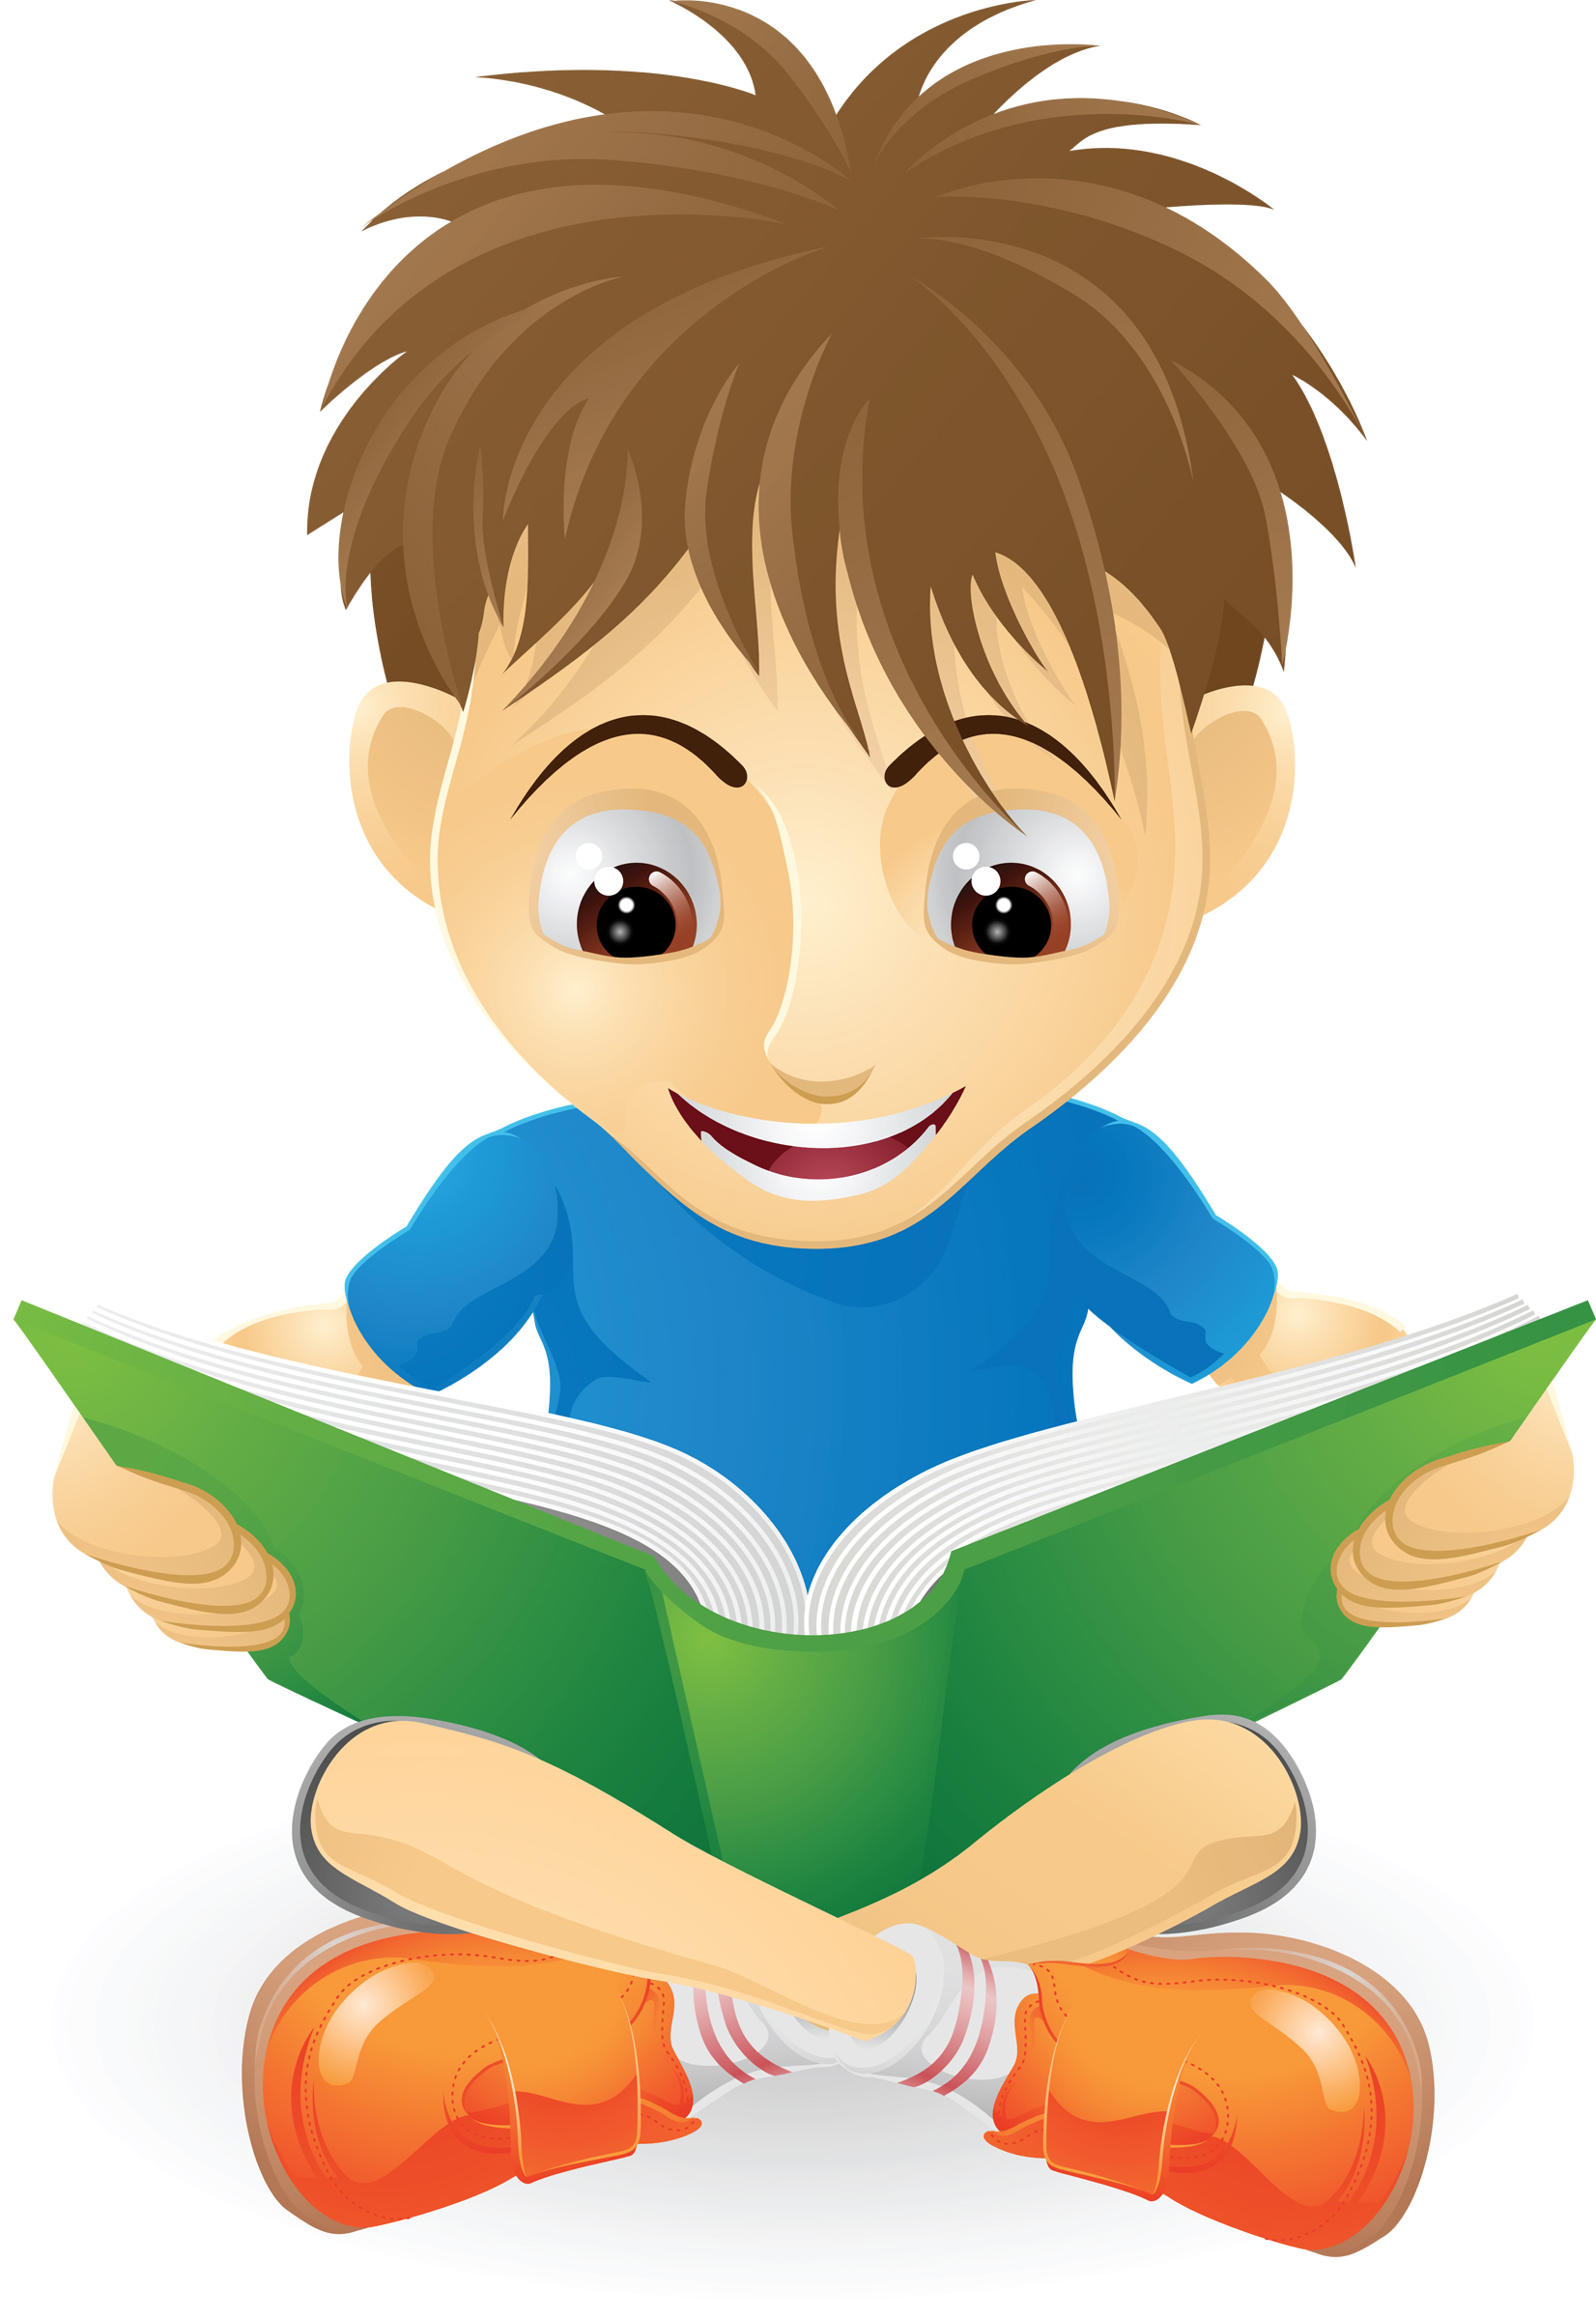 Free animated reading clipart. Boy and girl download